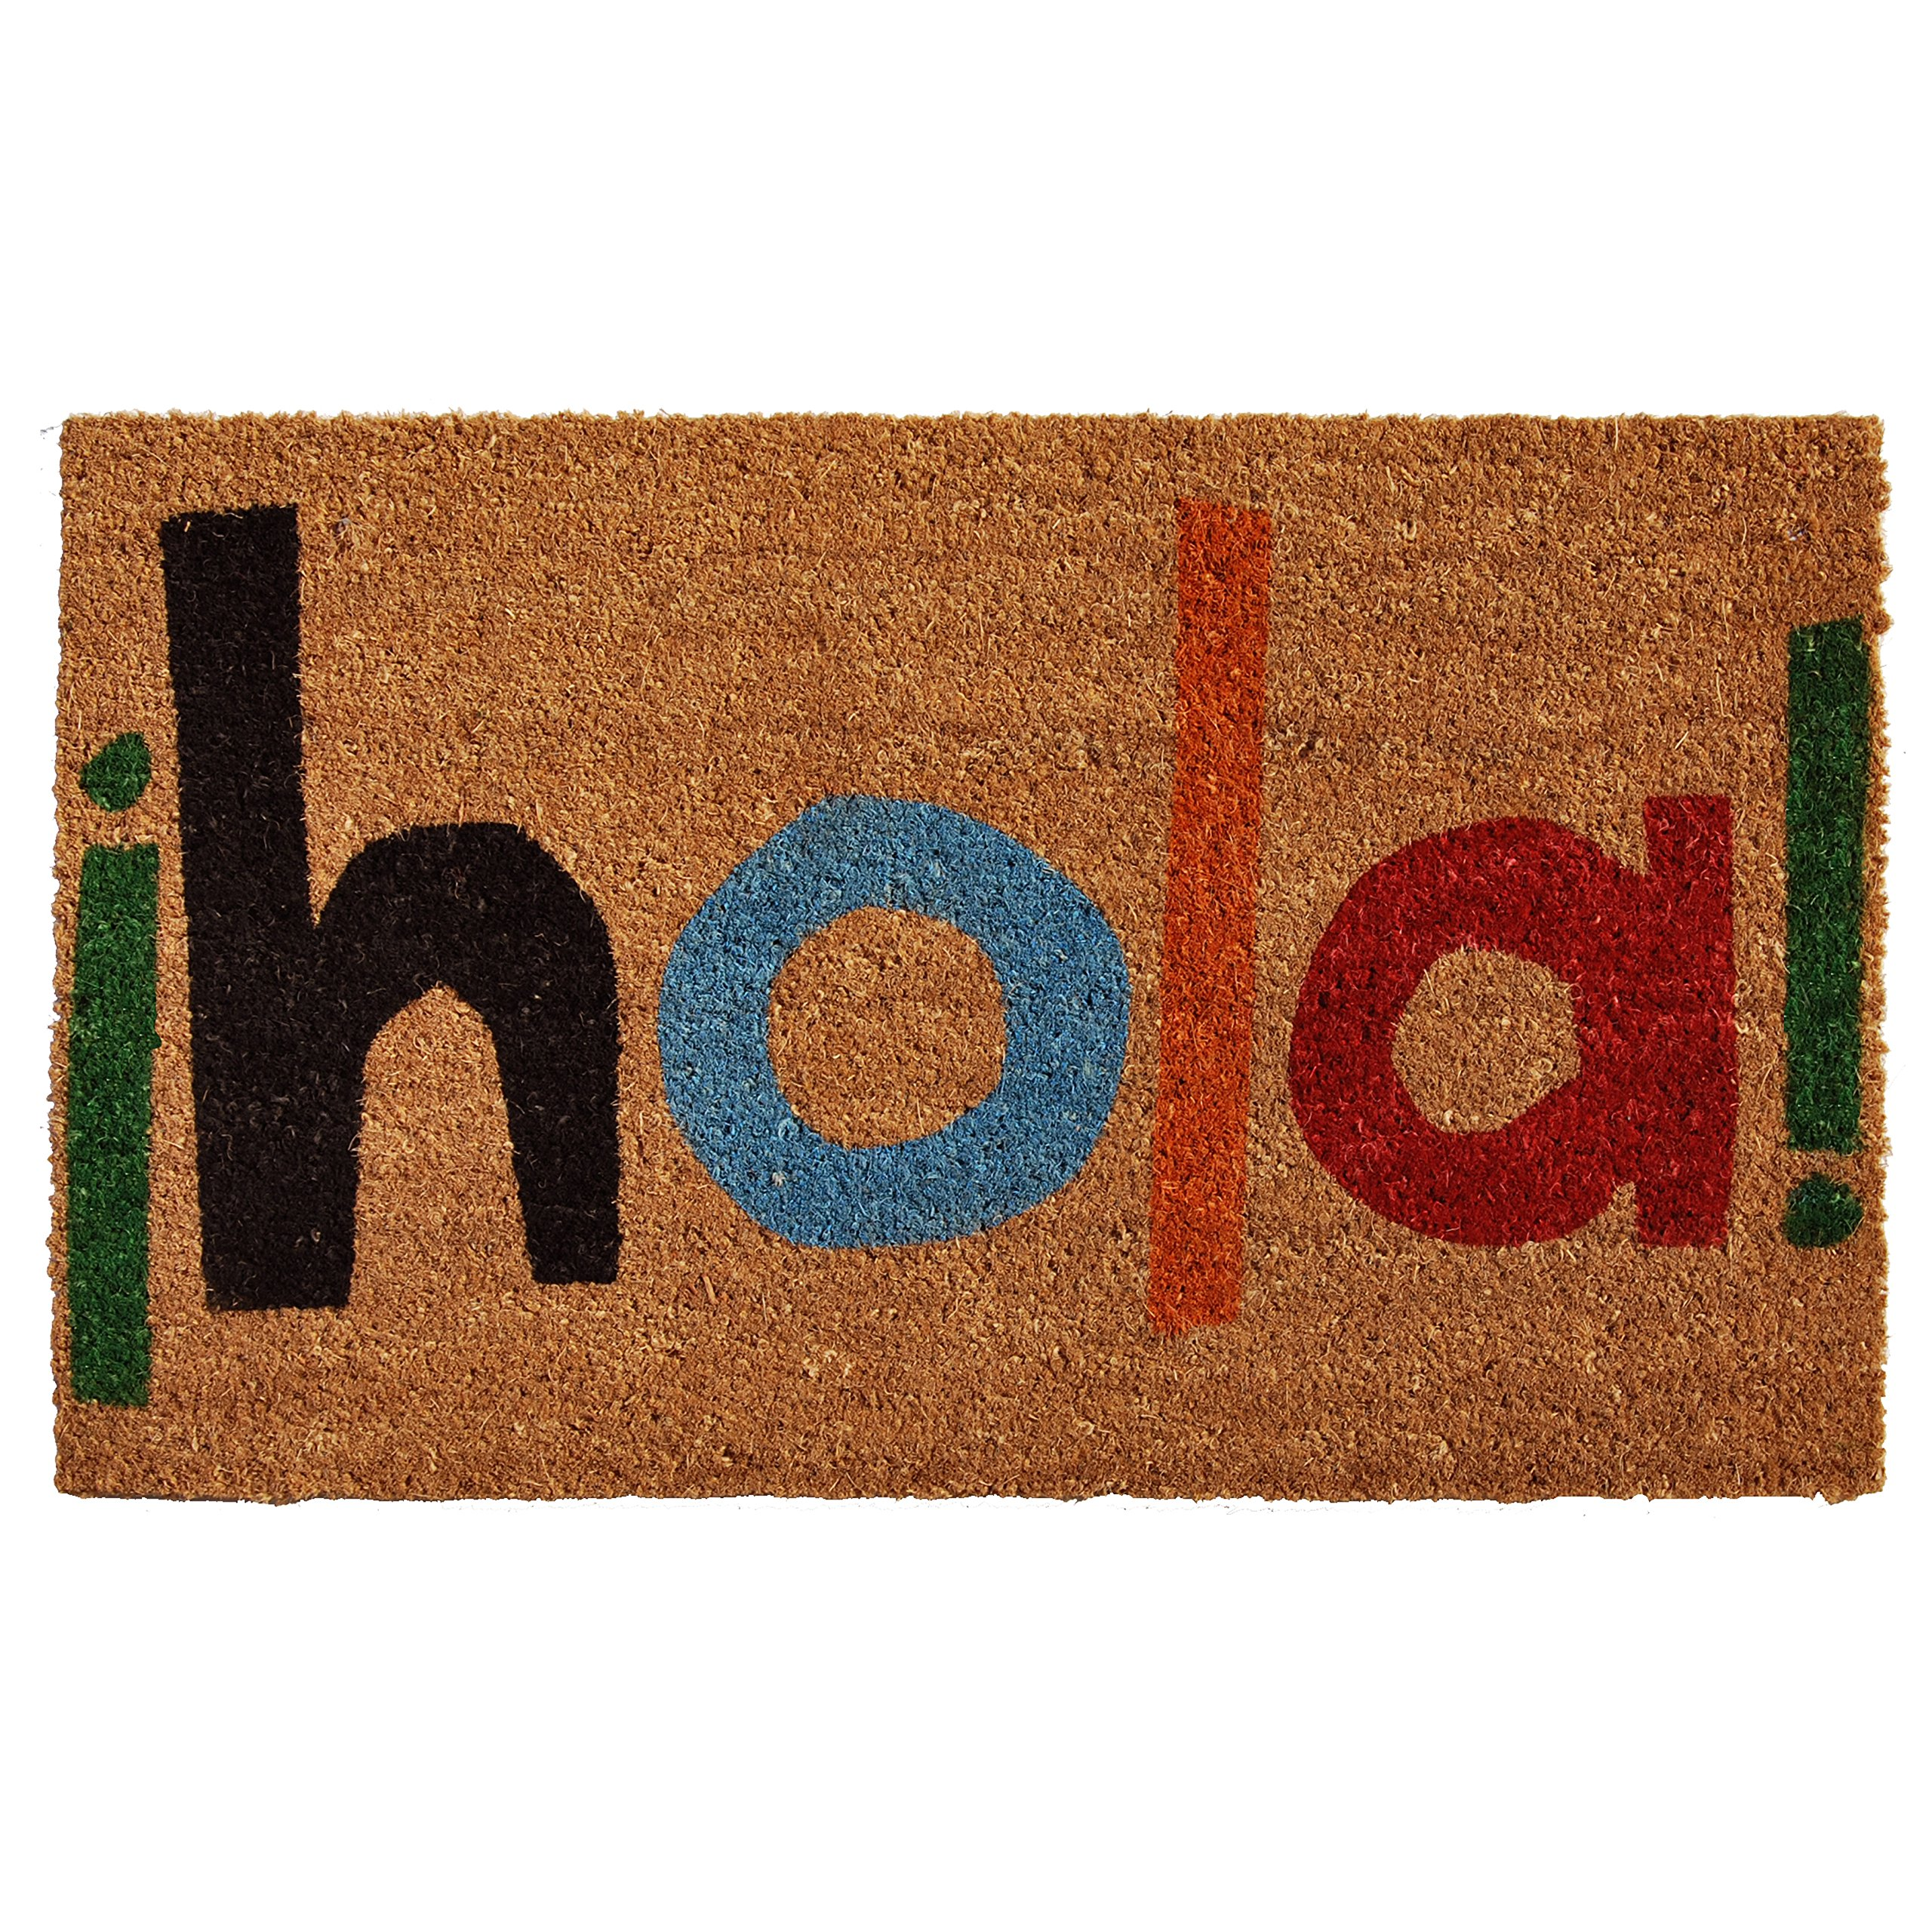 Home & More 121561729 Hola Doormat, 17'' x 29'' x 0.60'', Multicolor